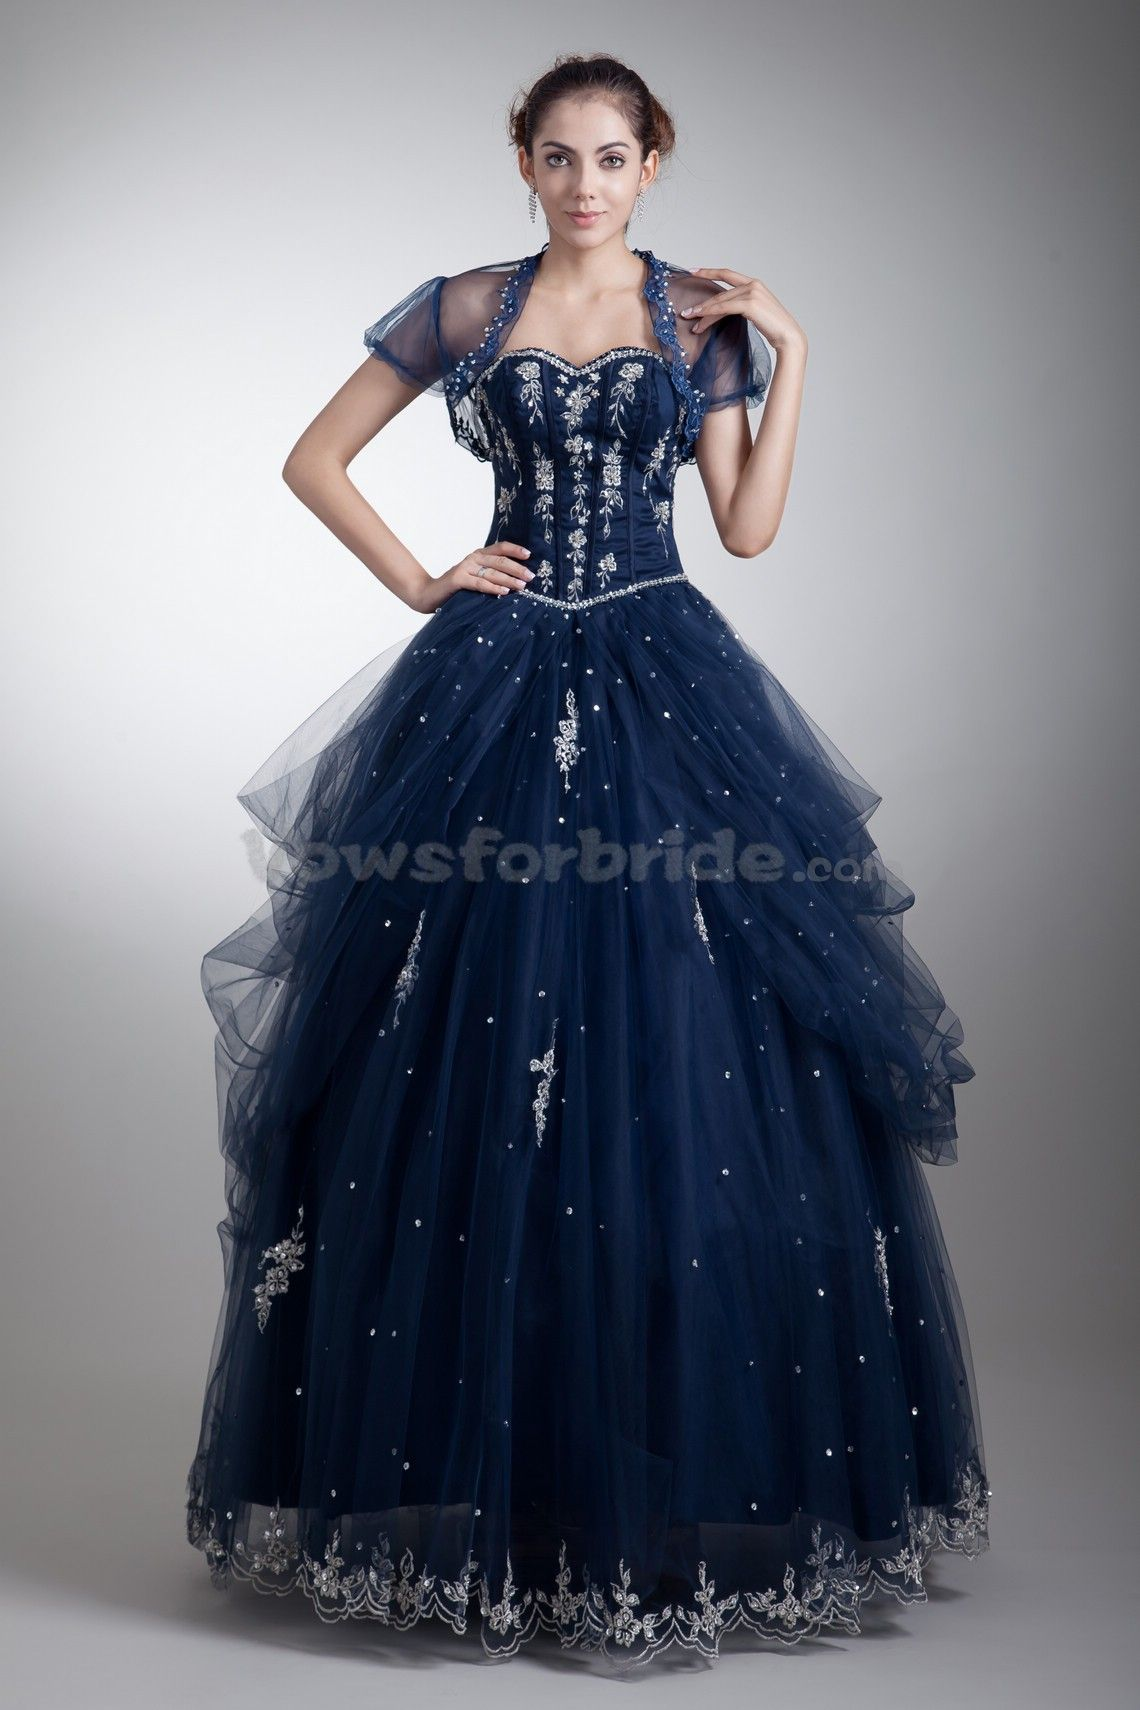 34ab7d5a0ece Satin-and-net-sweetheart-floor-length-ball-gown-embroidered-prom-dress -with-jacket